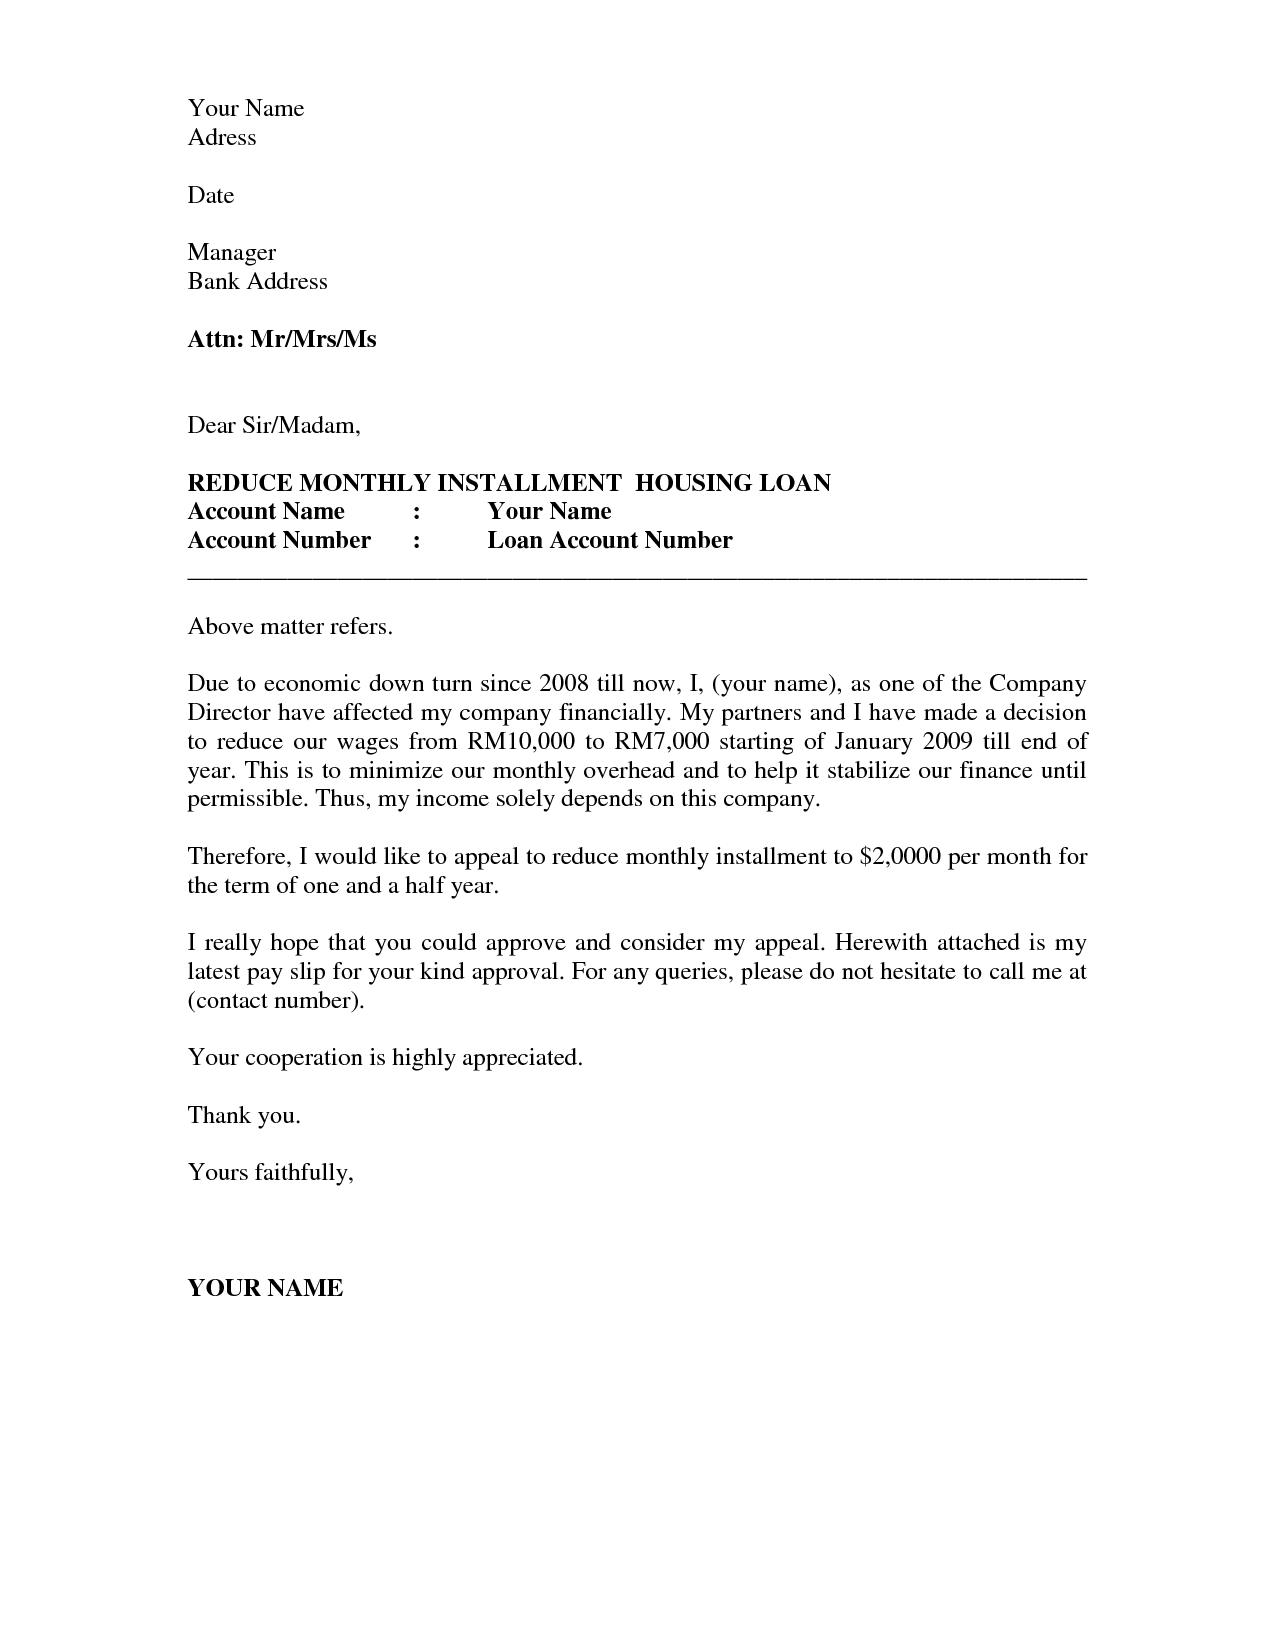 Business appeal letter a letter of appeal should be written in a business appeal letter a letter of appeal should be written in a professional business letter mitanshu Image collections